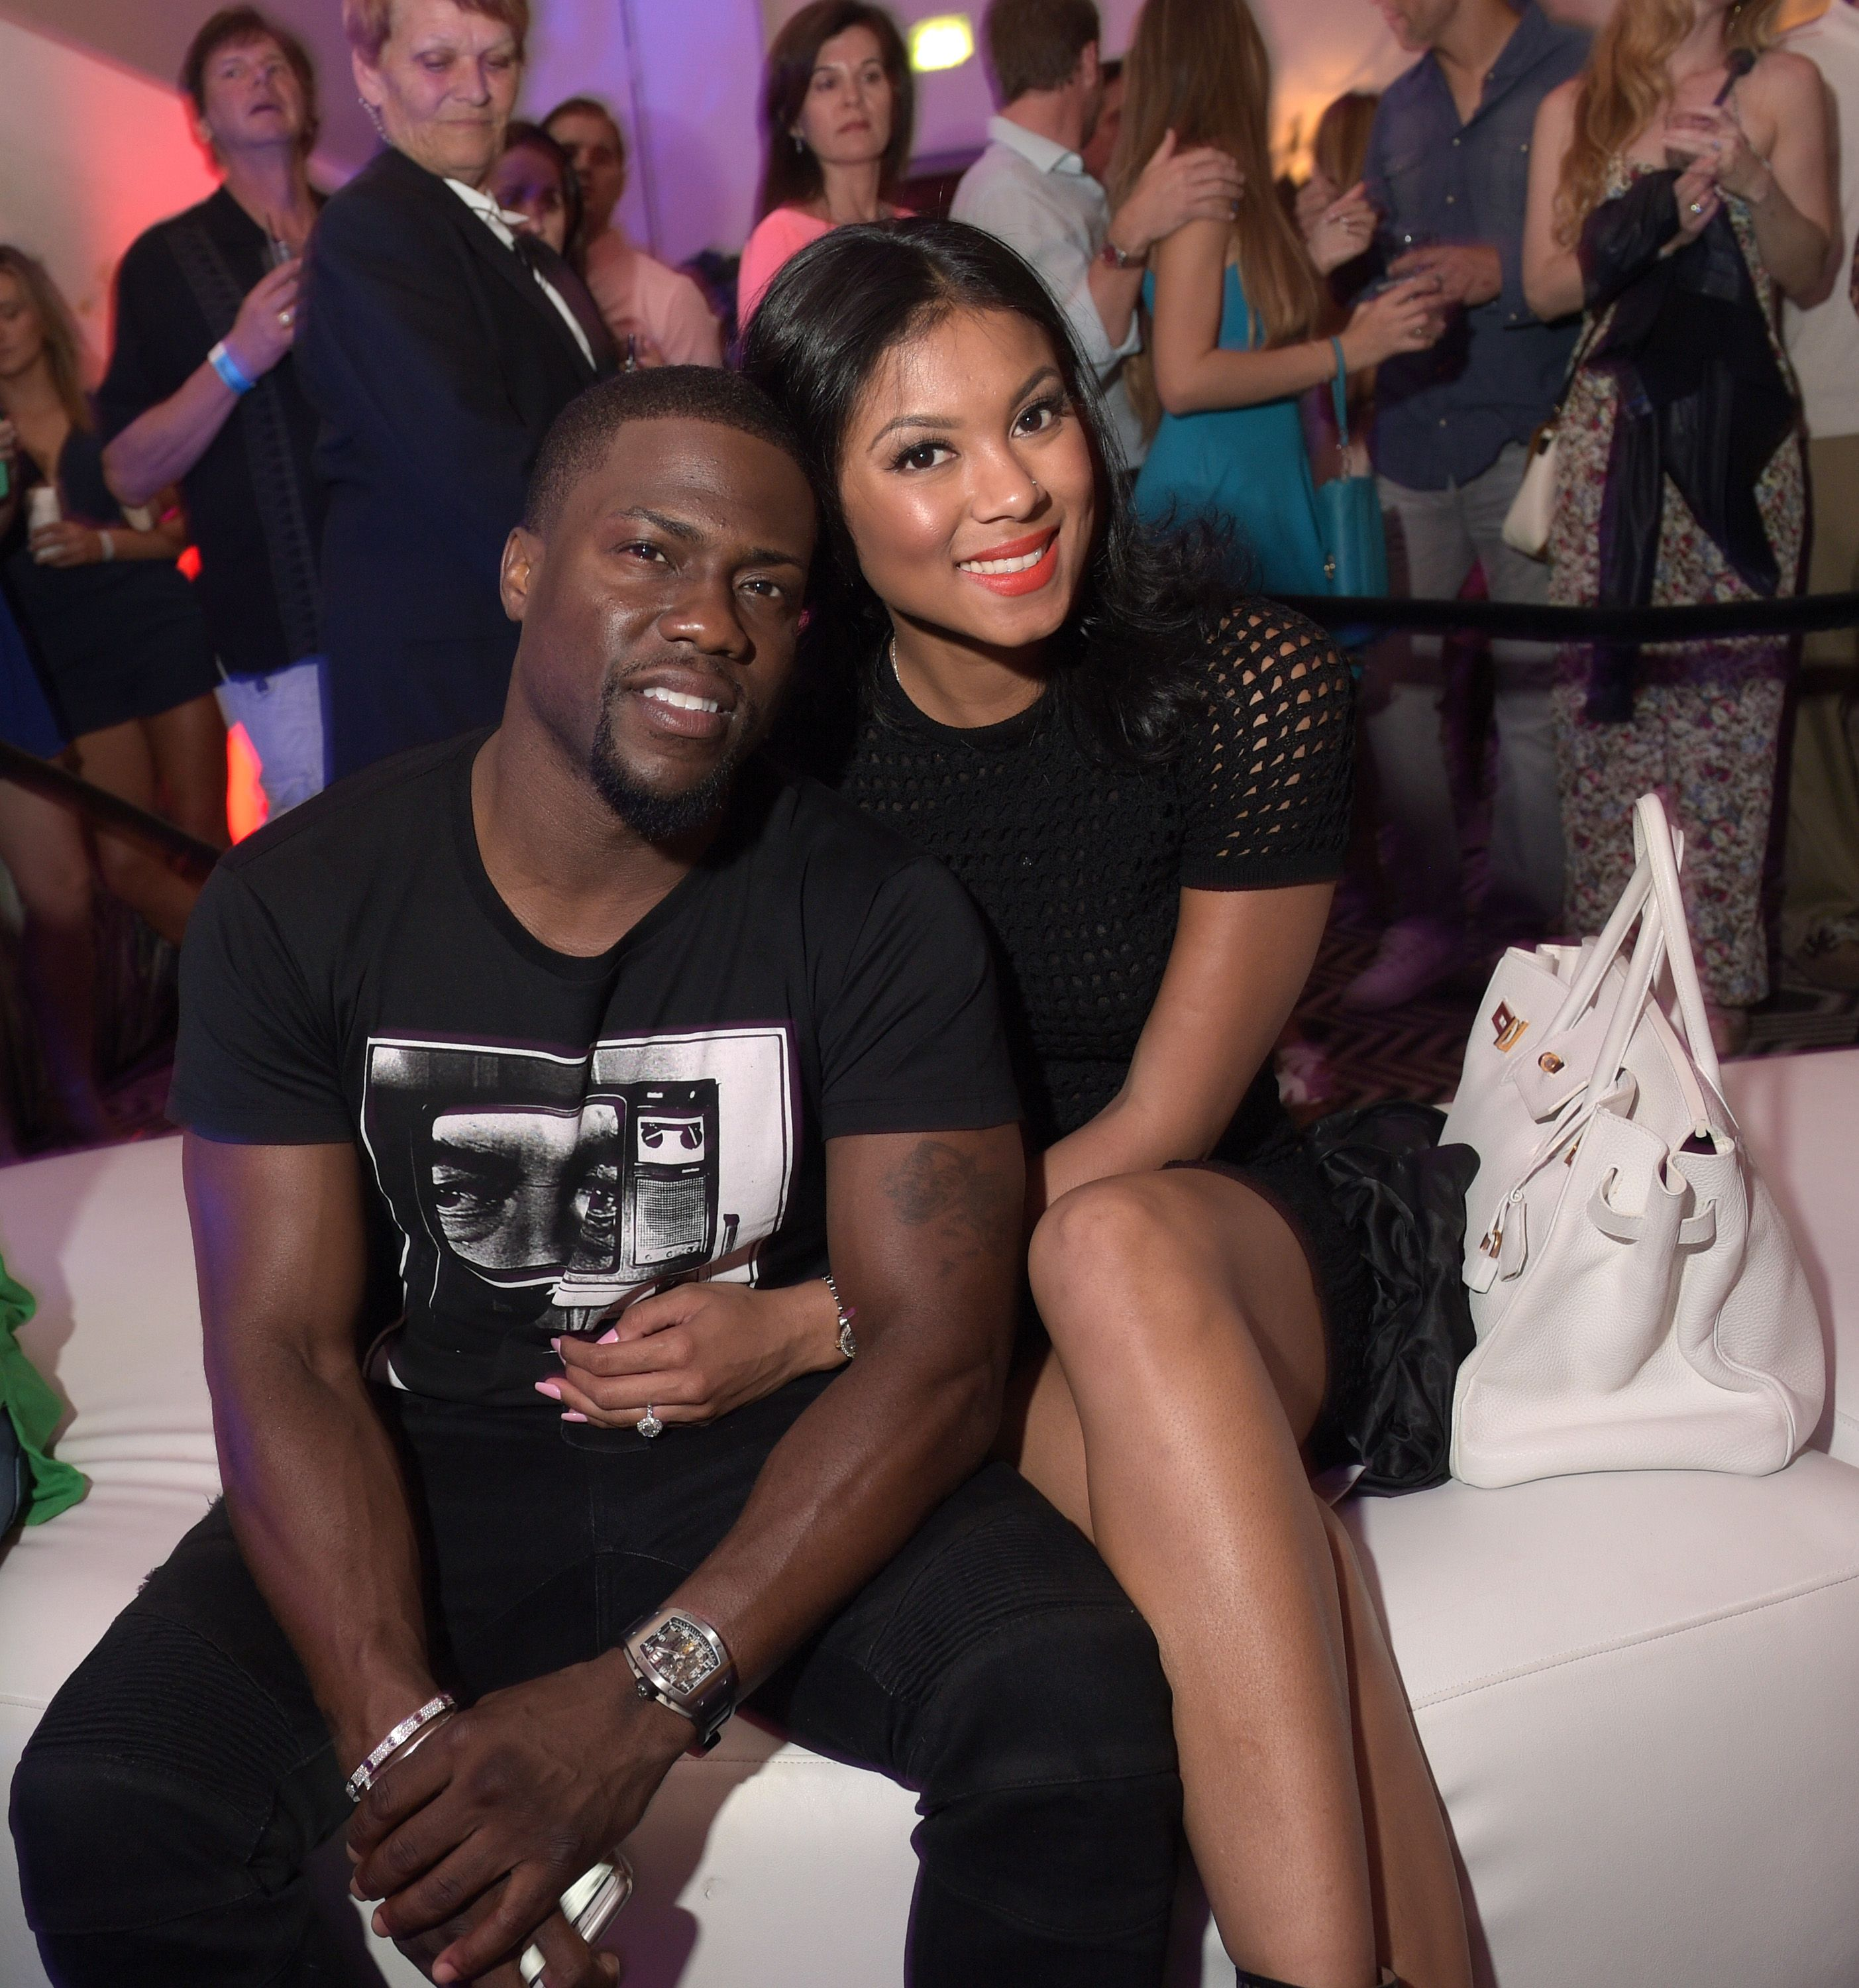 Kevin Hart and Eniko Parrish during the 11th Annual Desert Smash at La Quinta Resort and Club on March 10, 2015 | Source: Getty Images